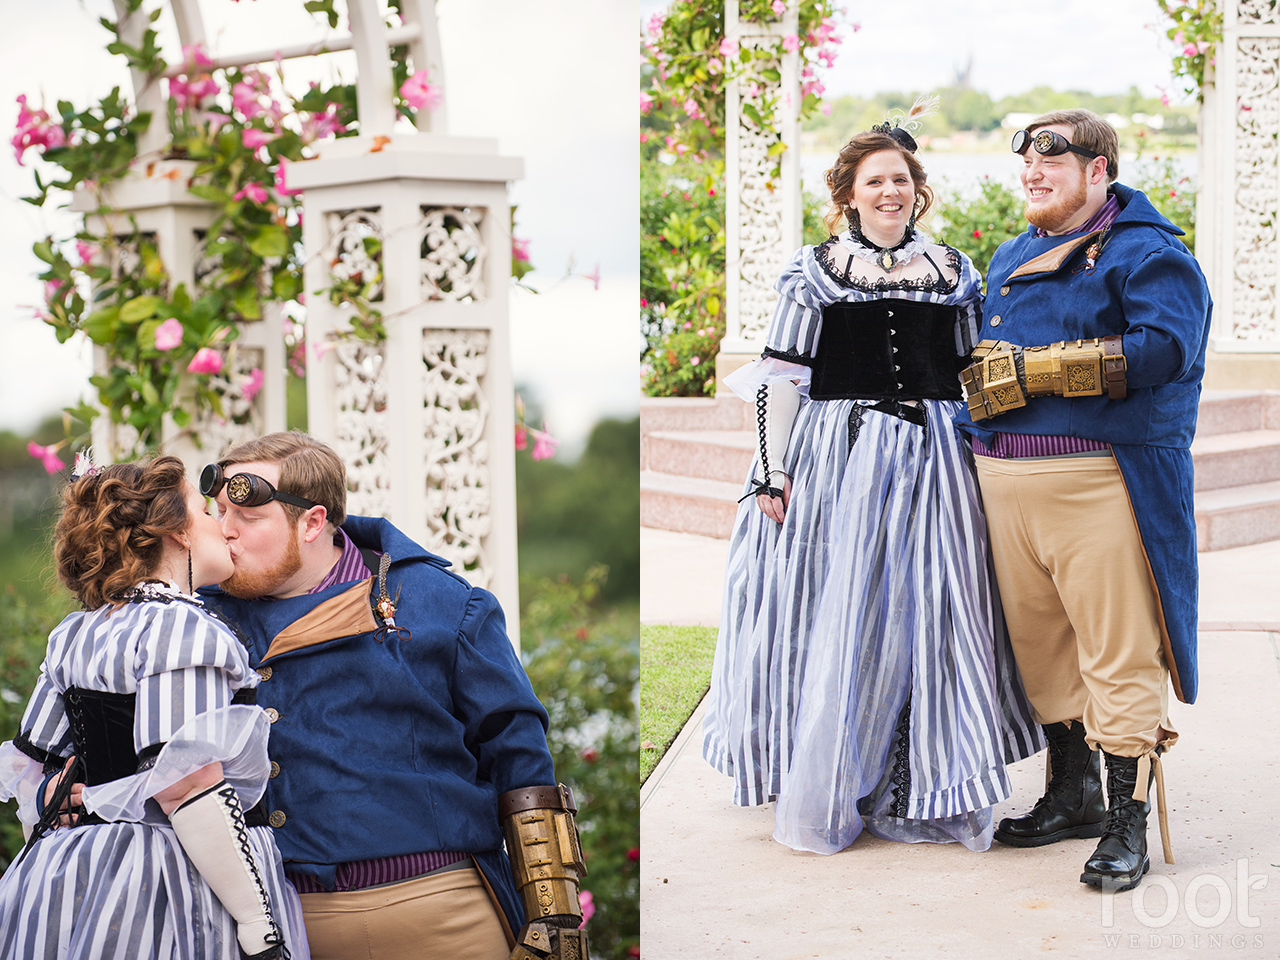 steampunk-cosplay-wedding-photographers-orlando-11